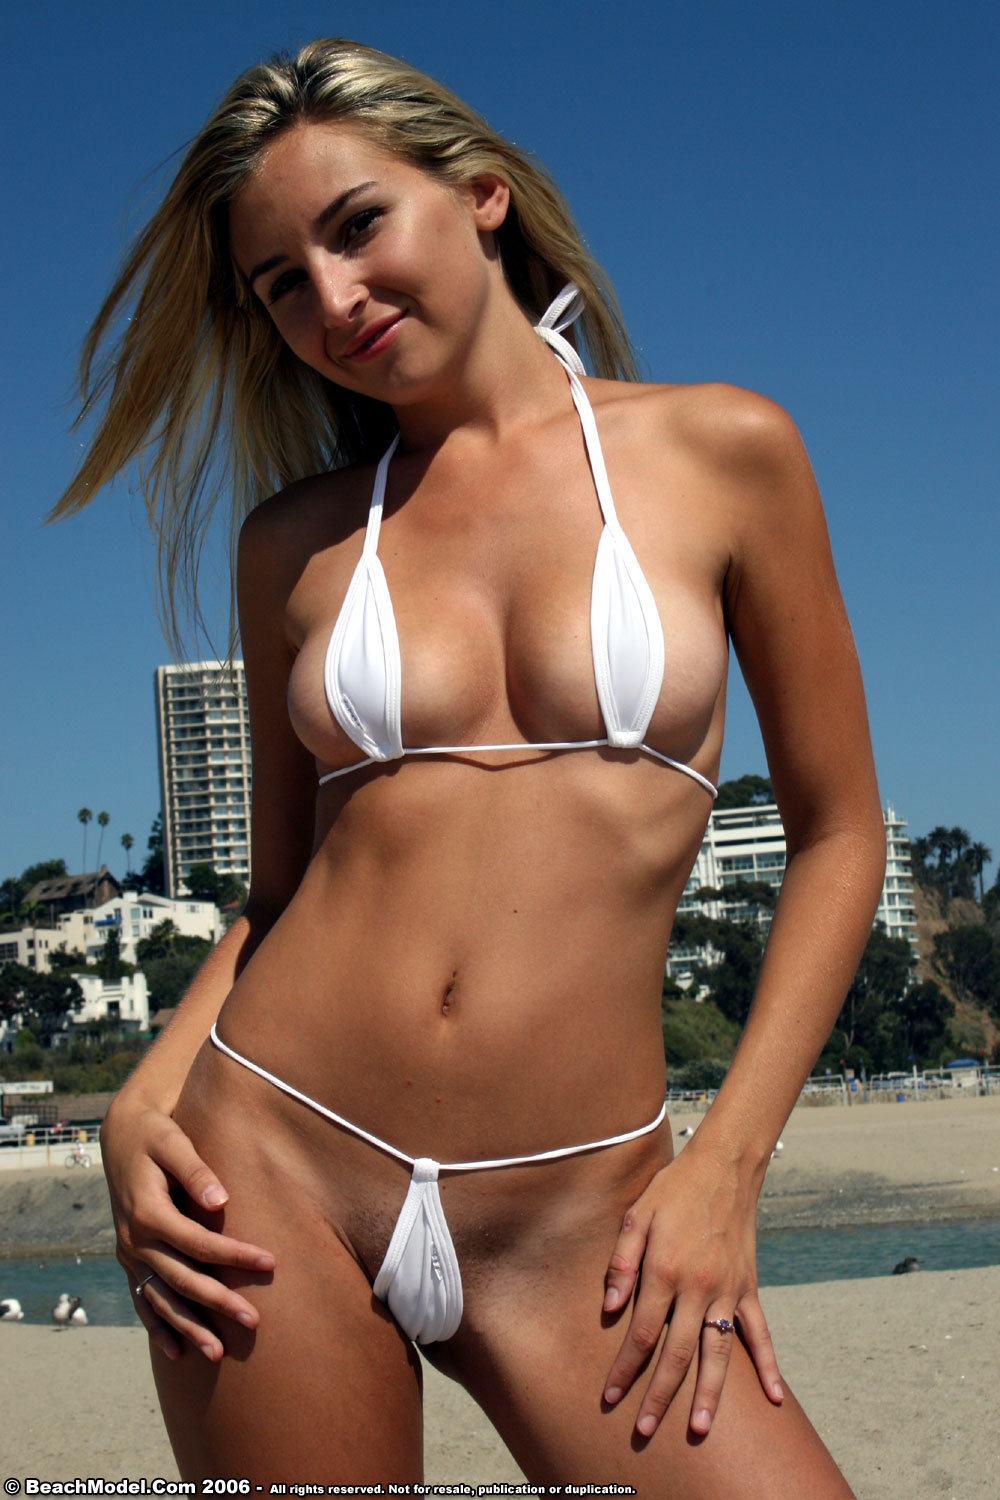 Girls 2010 bikini hottest of